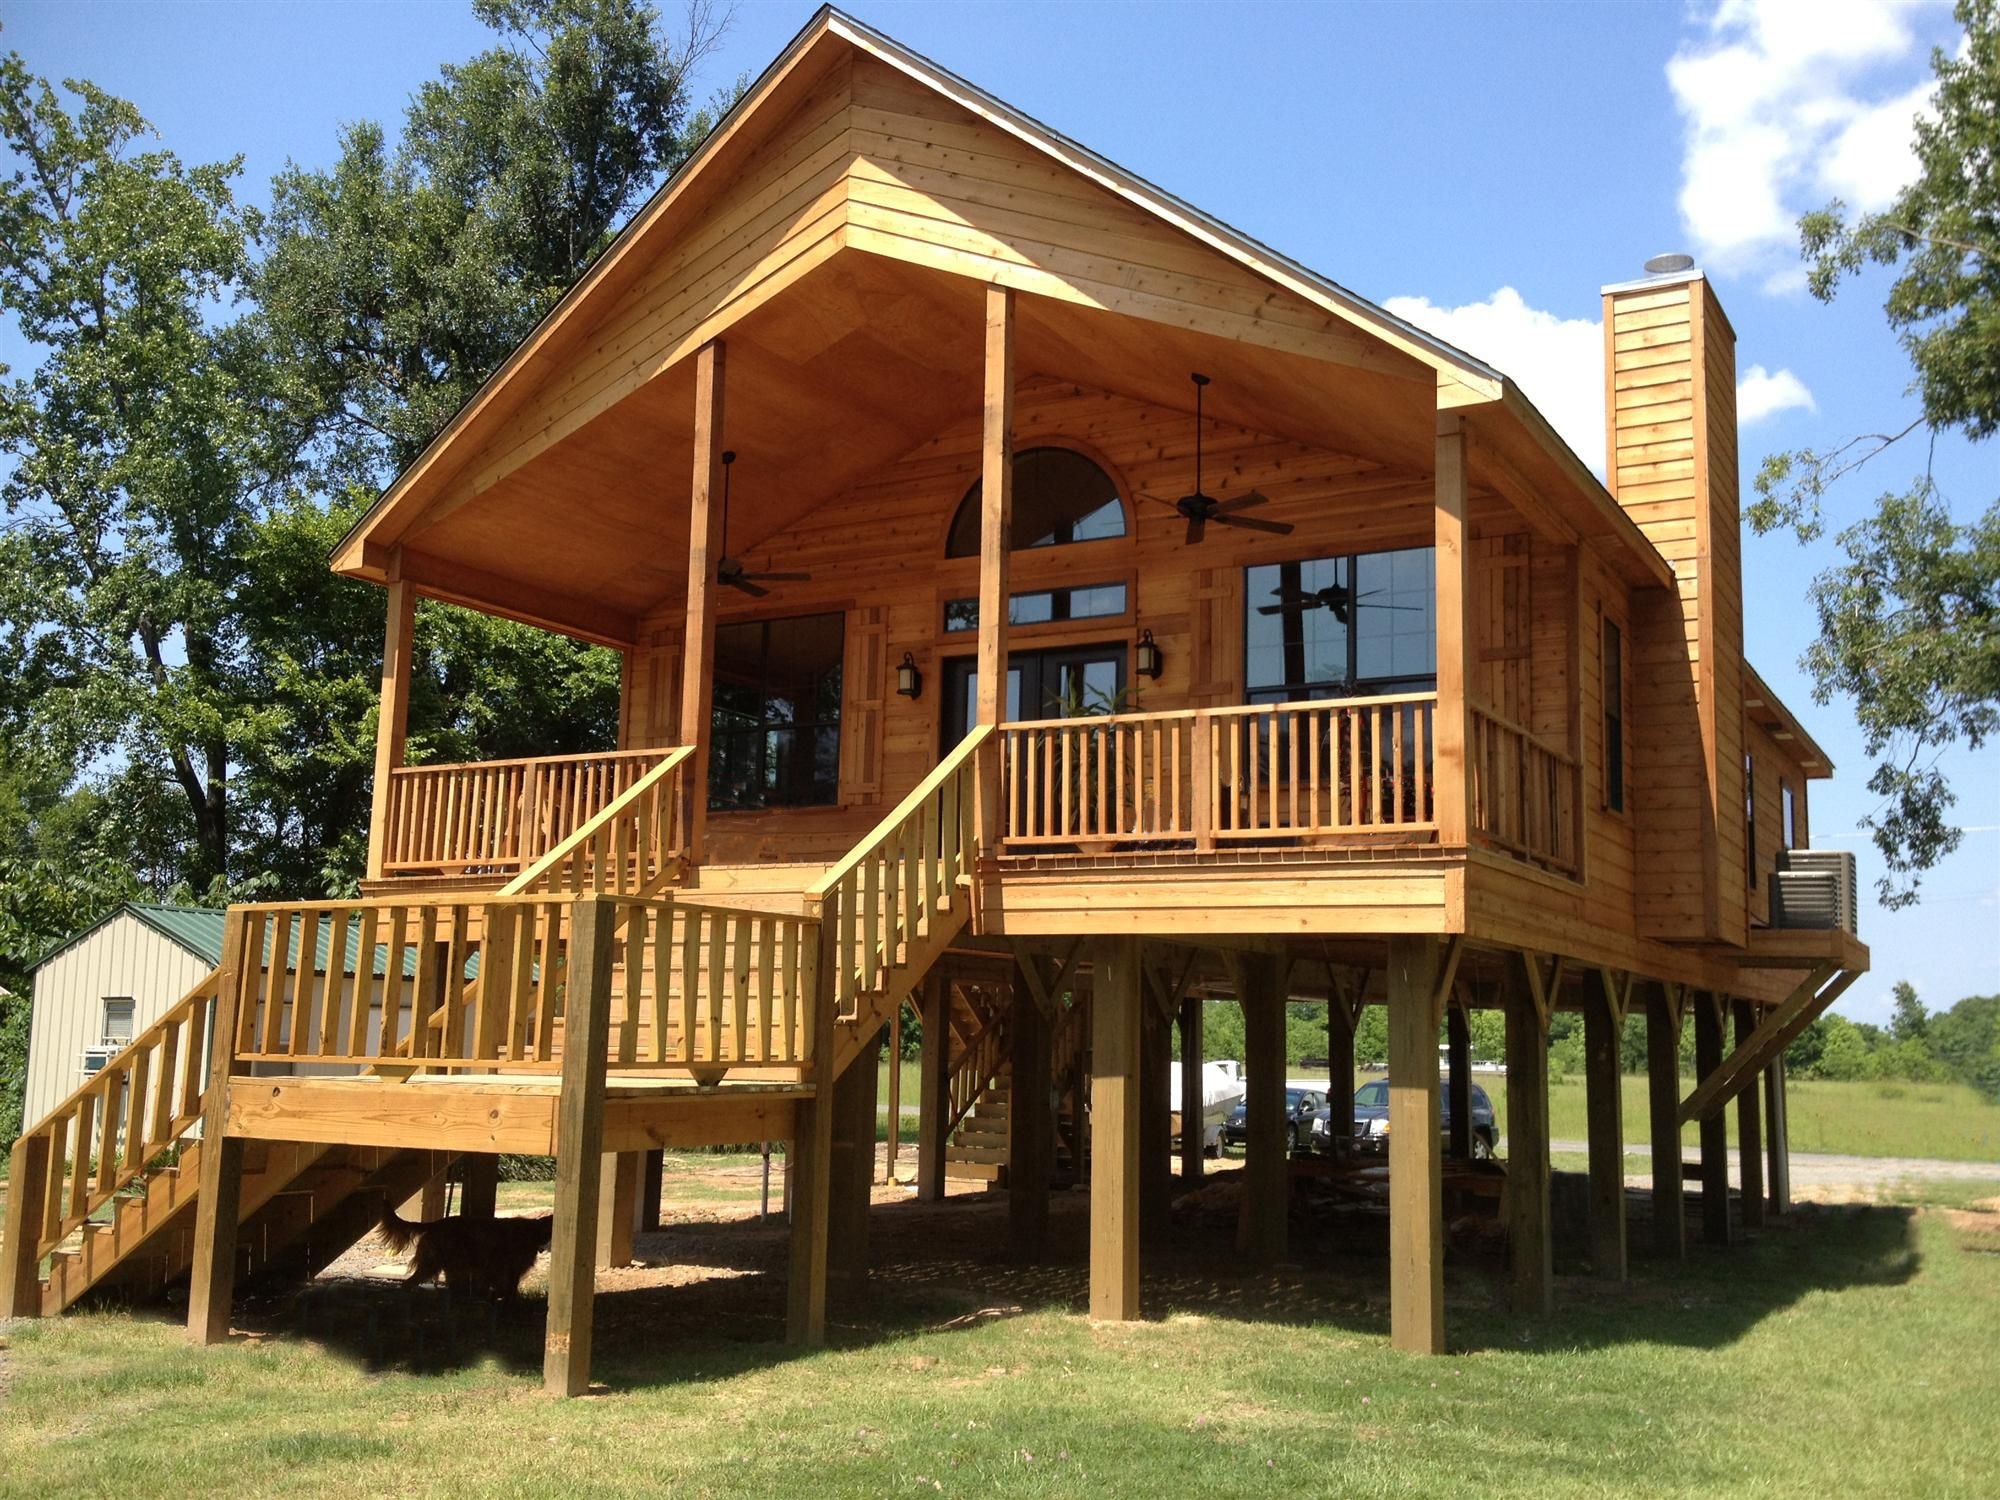 Charming Home Plans On Stilts #2: Build Your House On Stilts!